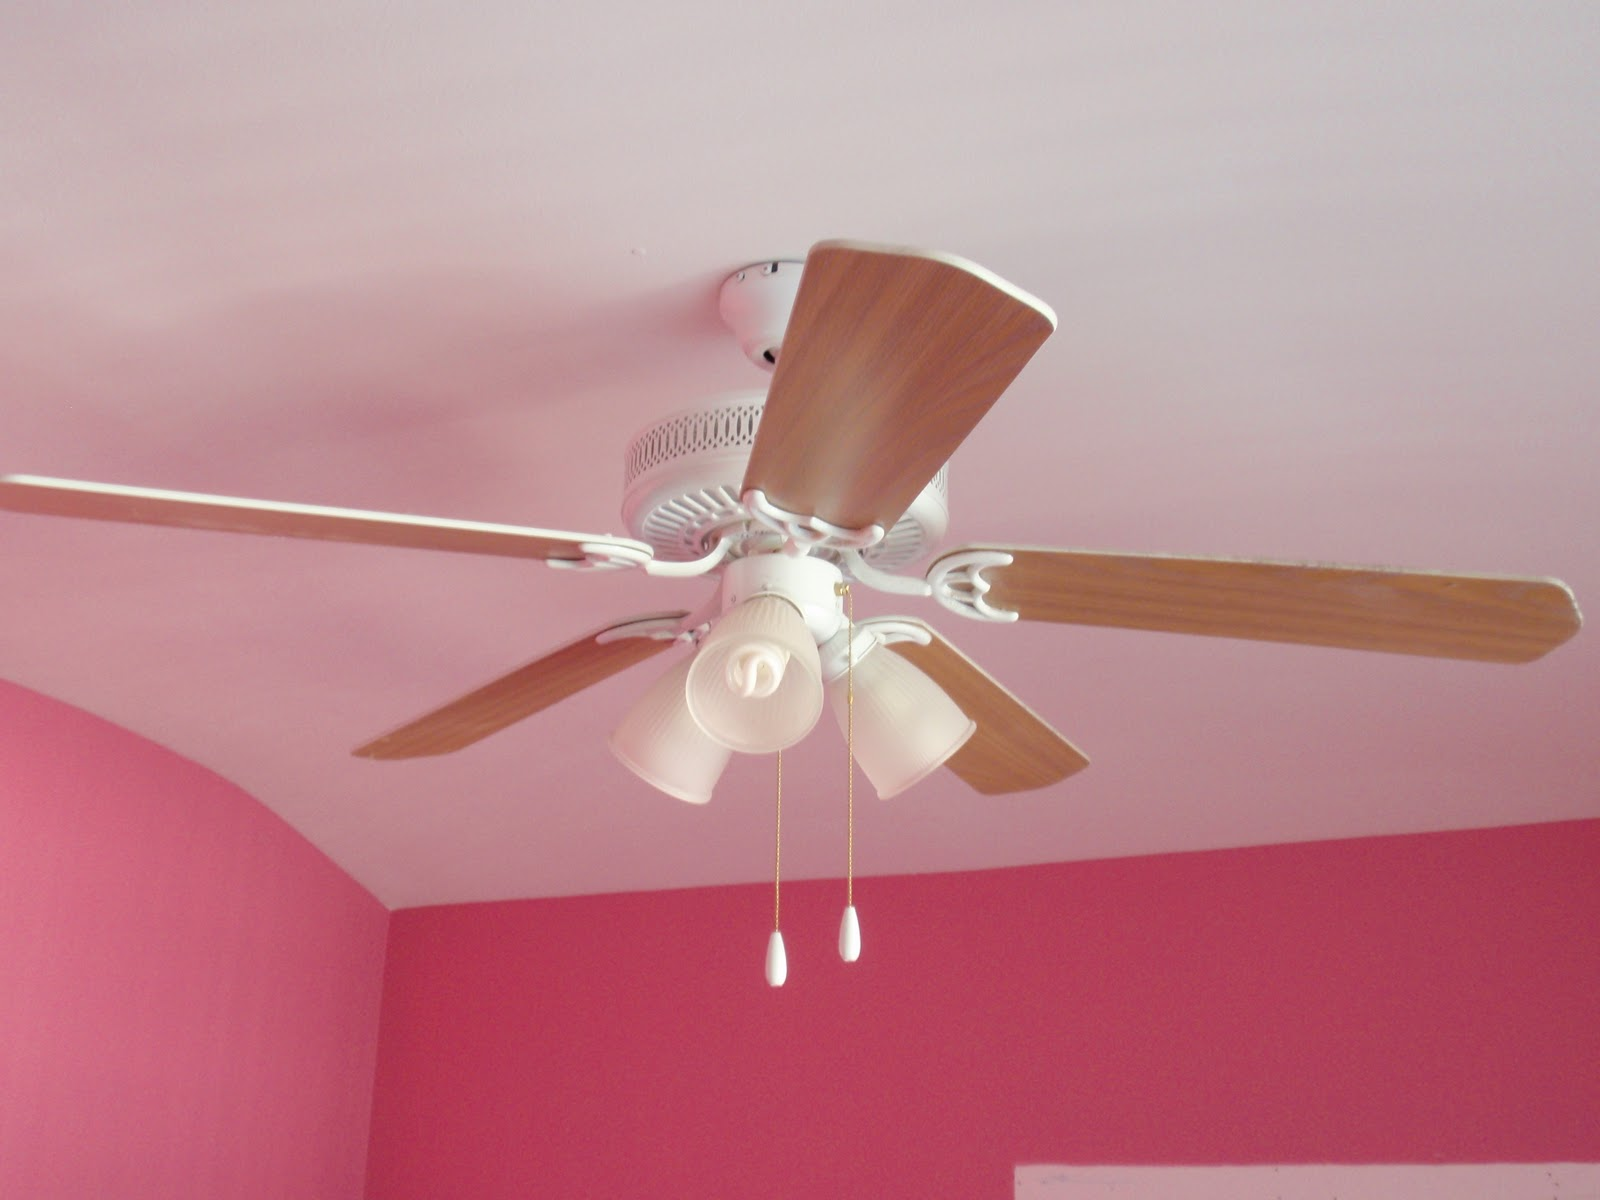 Diy By Design How To Transform An Ugly Ceiling Fan